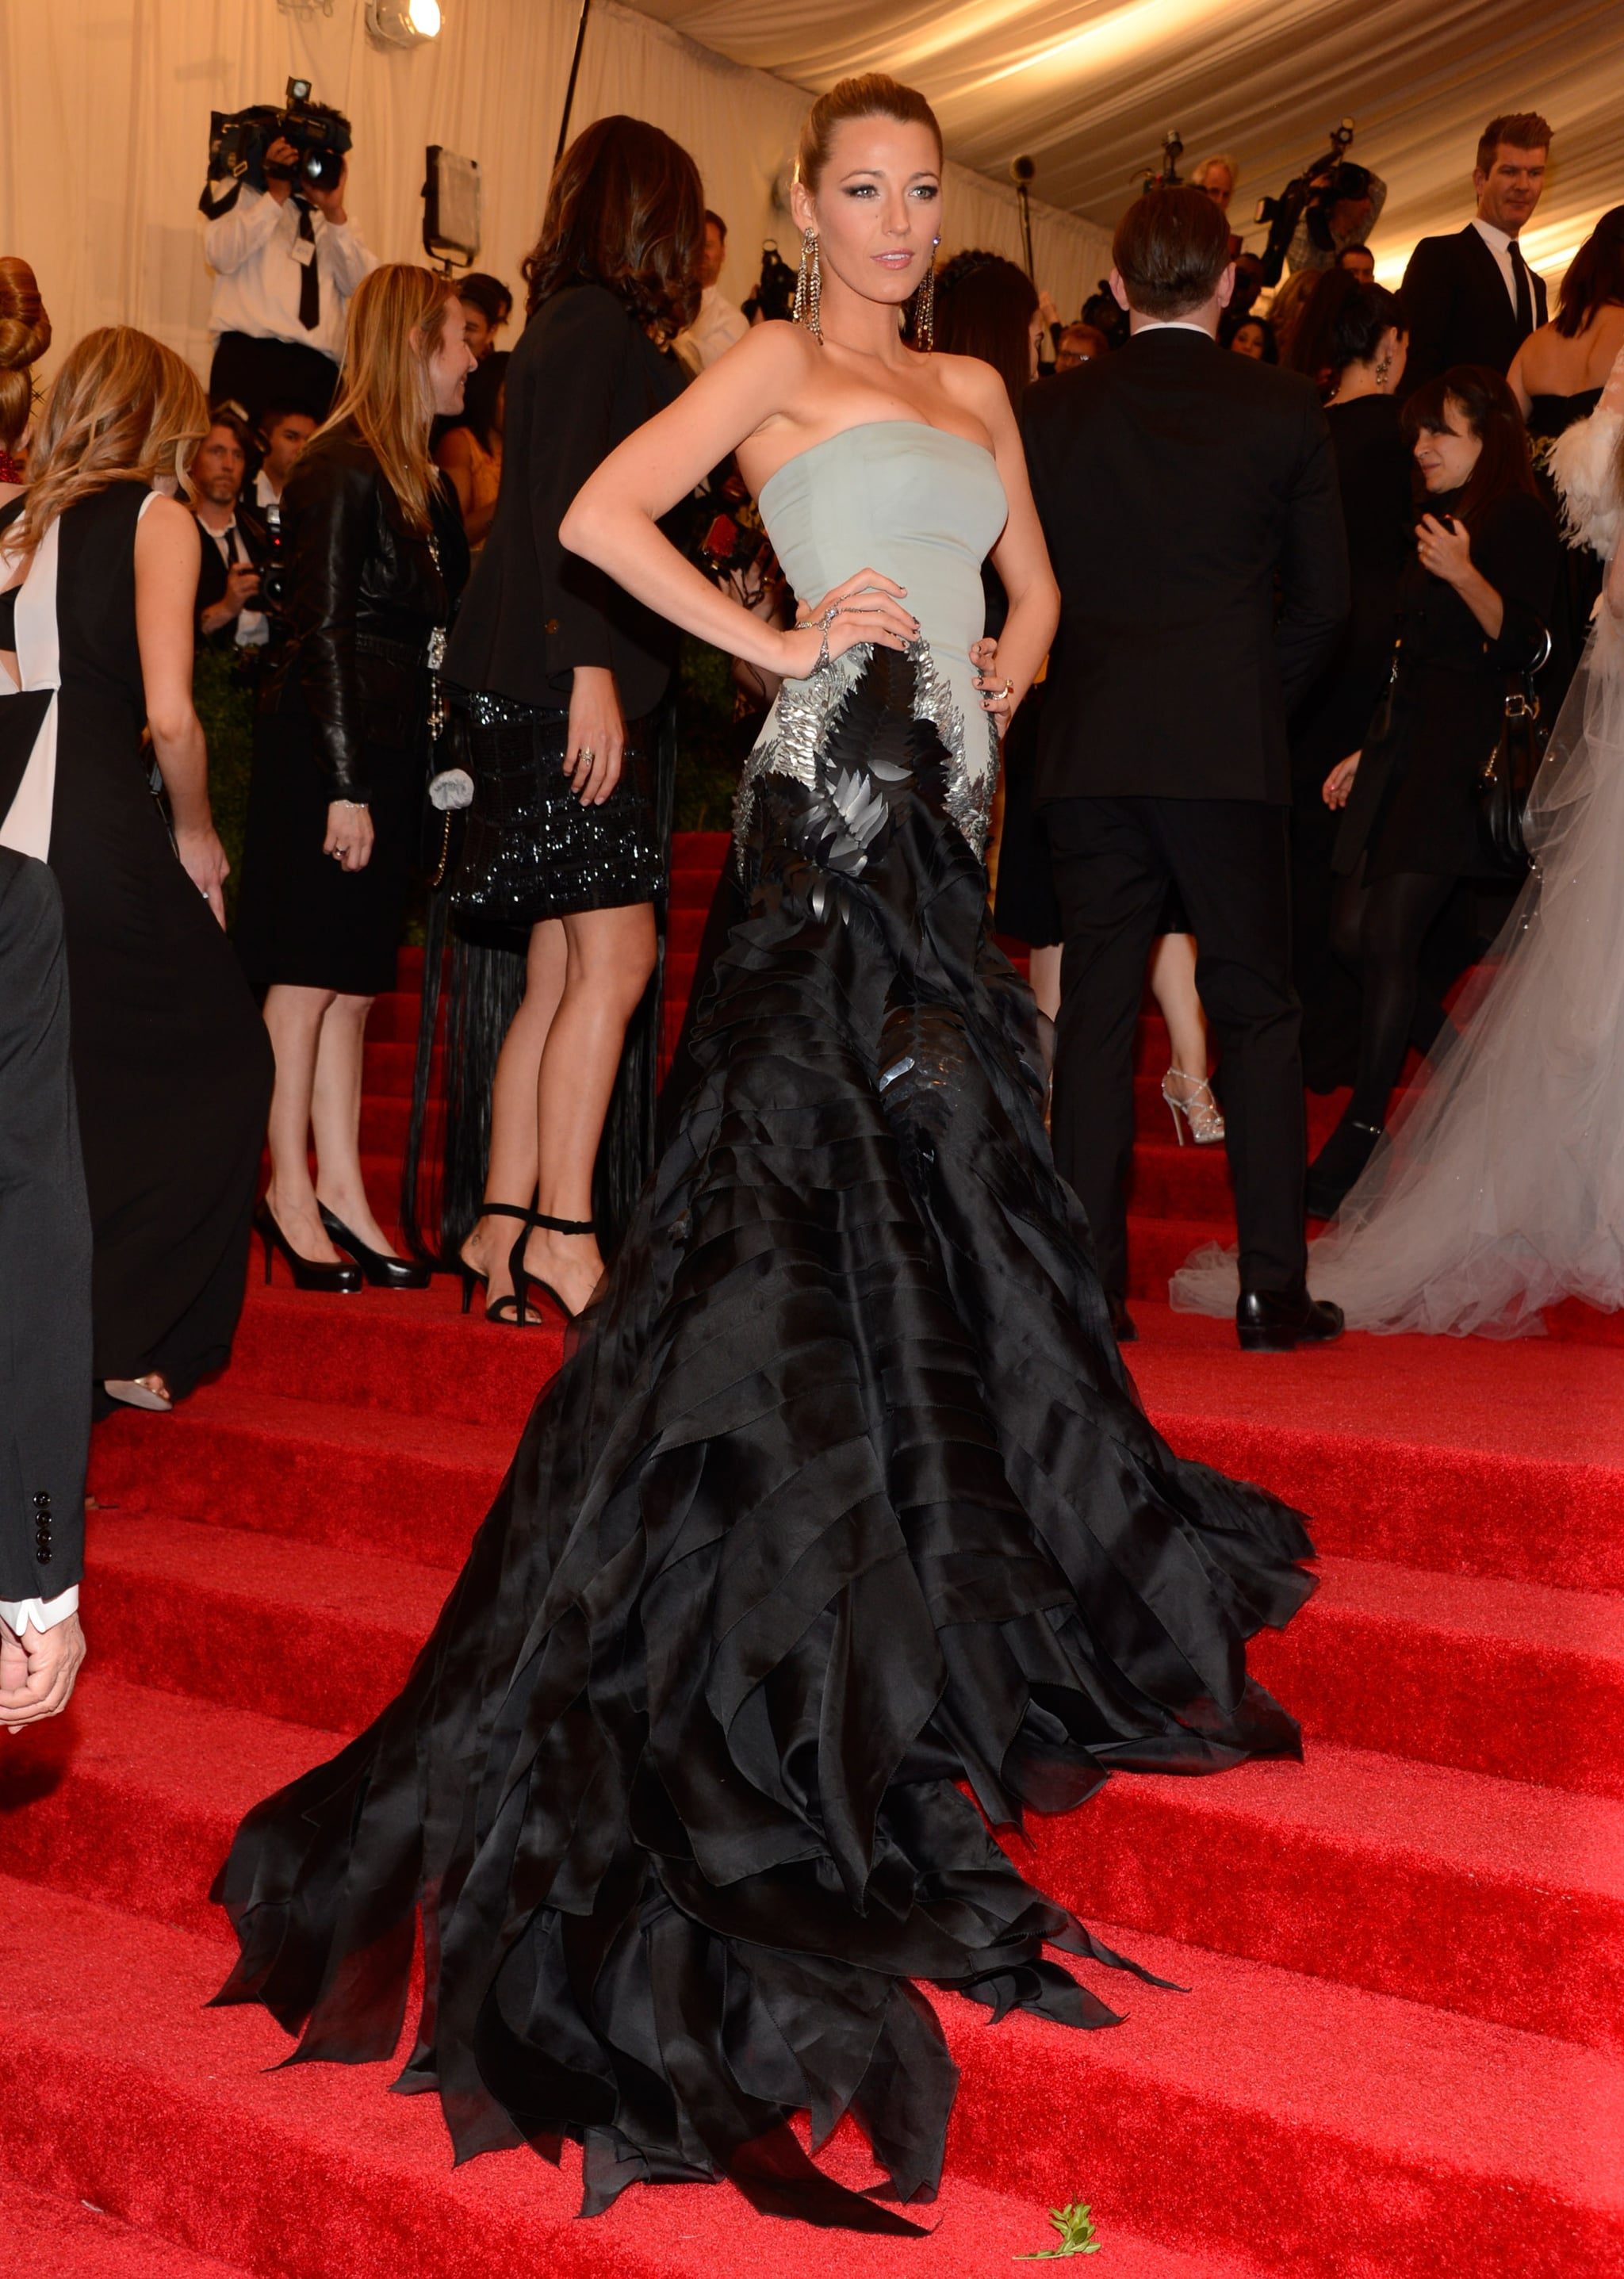 Blake Lively paused in the middle of the crowded staircase.